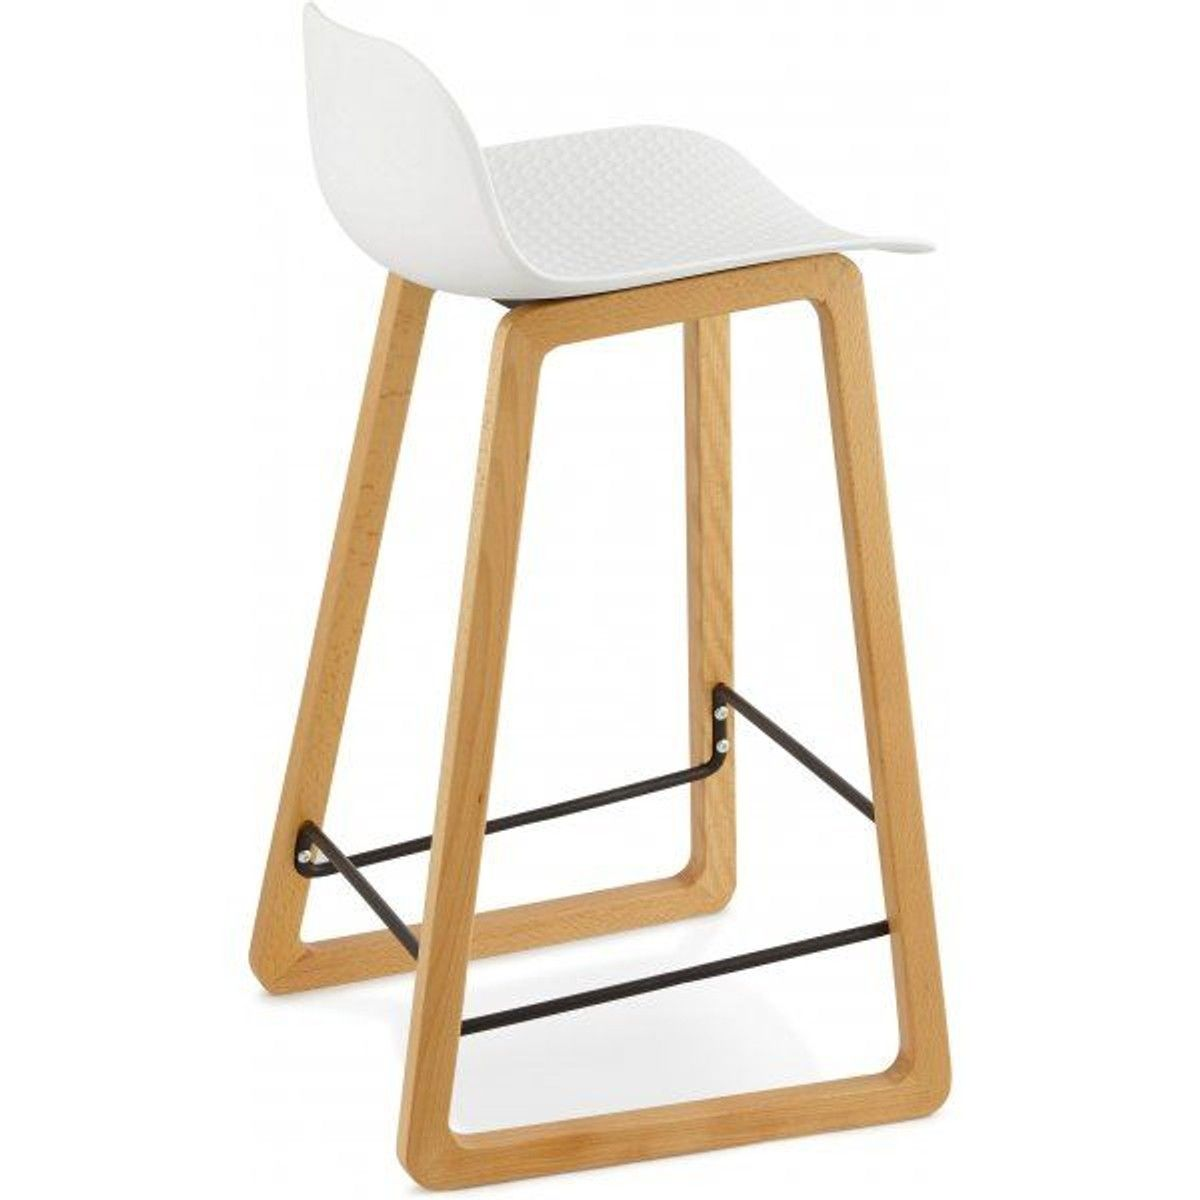 Tabourets De Bar Pliants Tabouret De Bar Design Astoria - Taille : Taille Unique